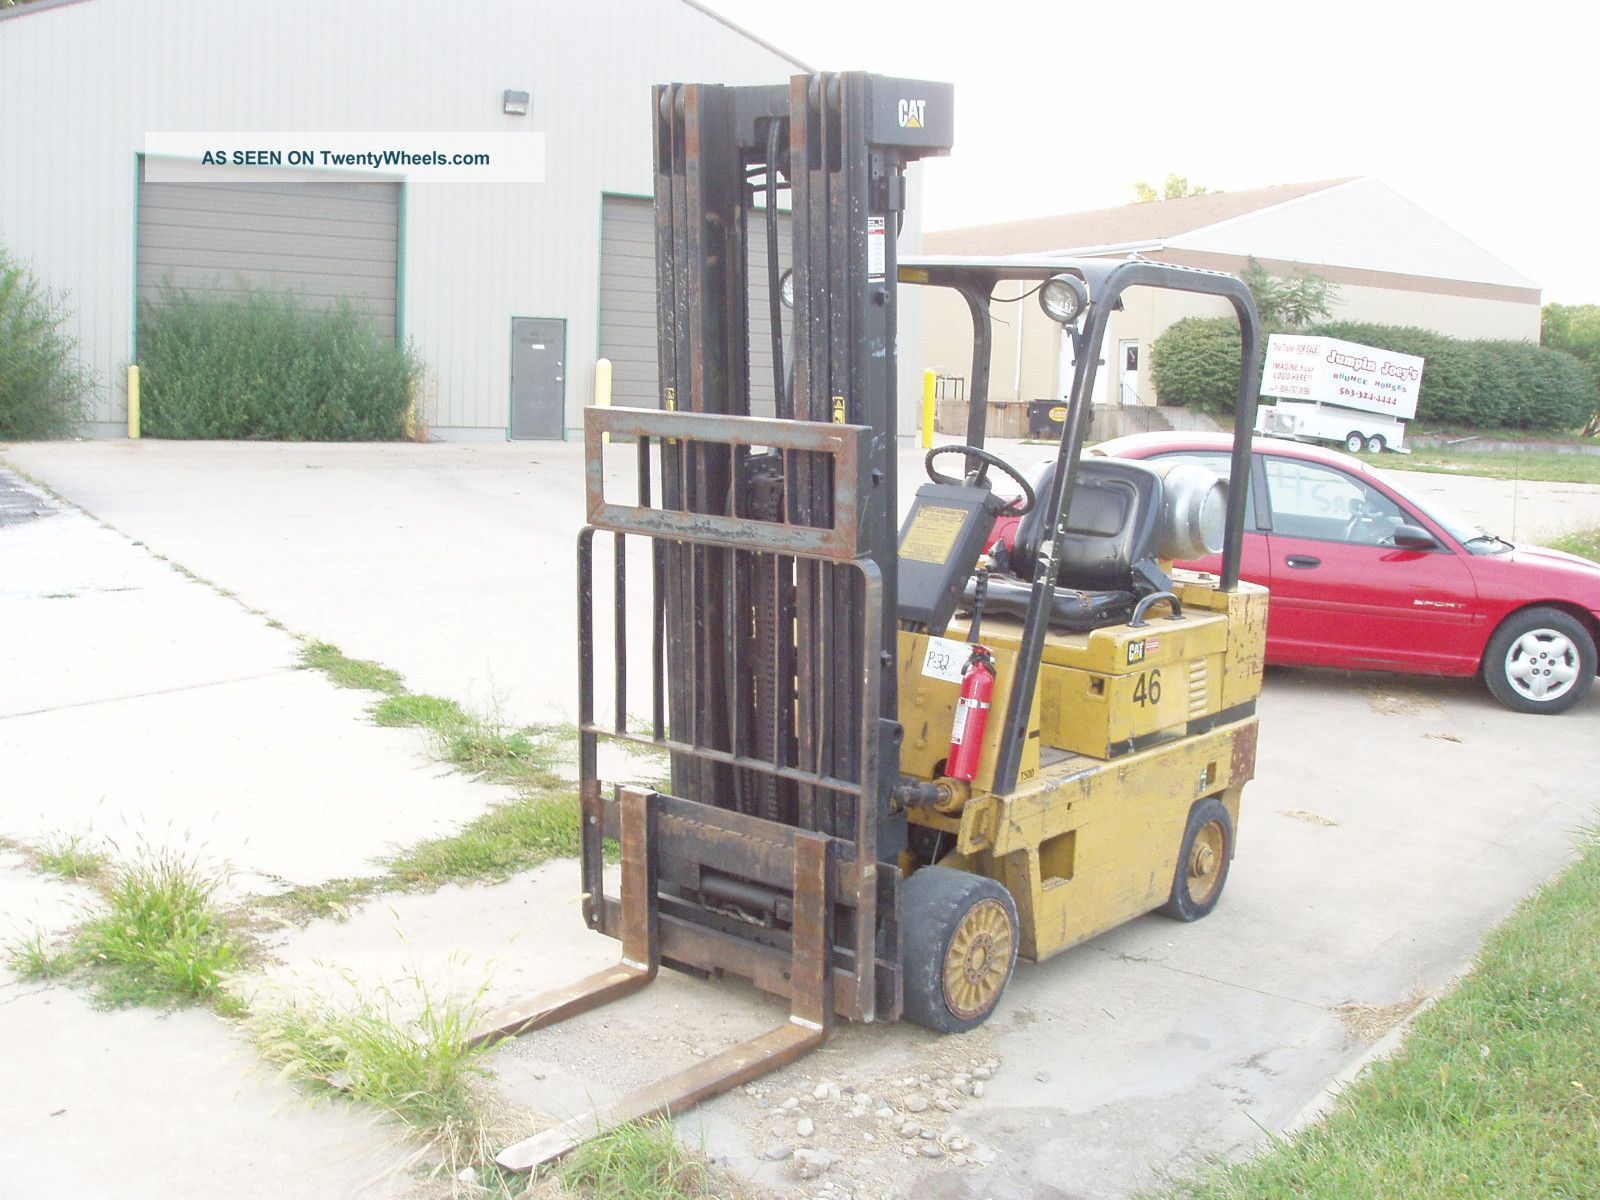 Caterpillar V50d Forklift Manual